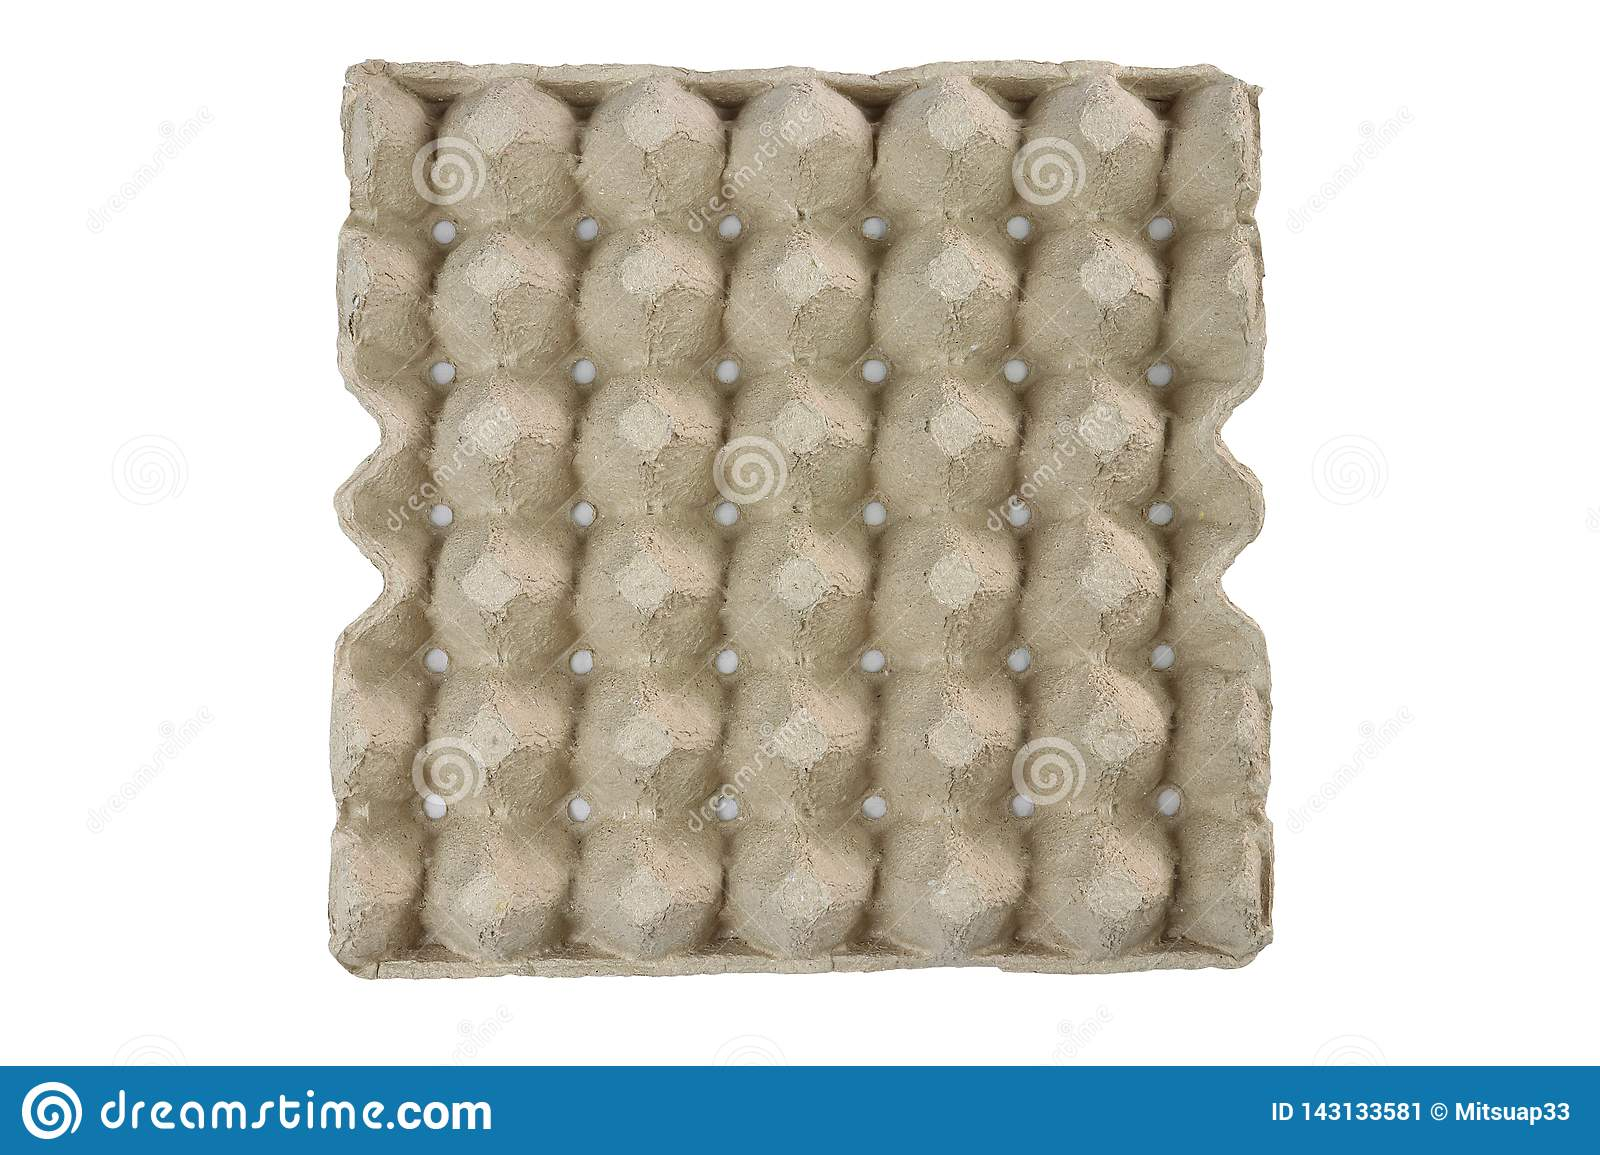 Egg tray, Stack cardboard packaging for eggs isolated on black background